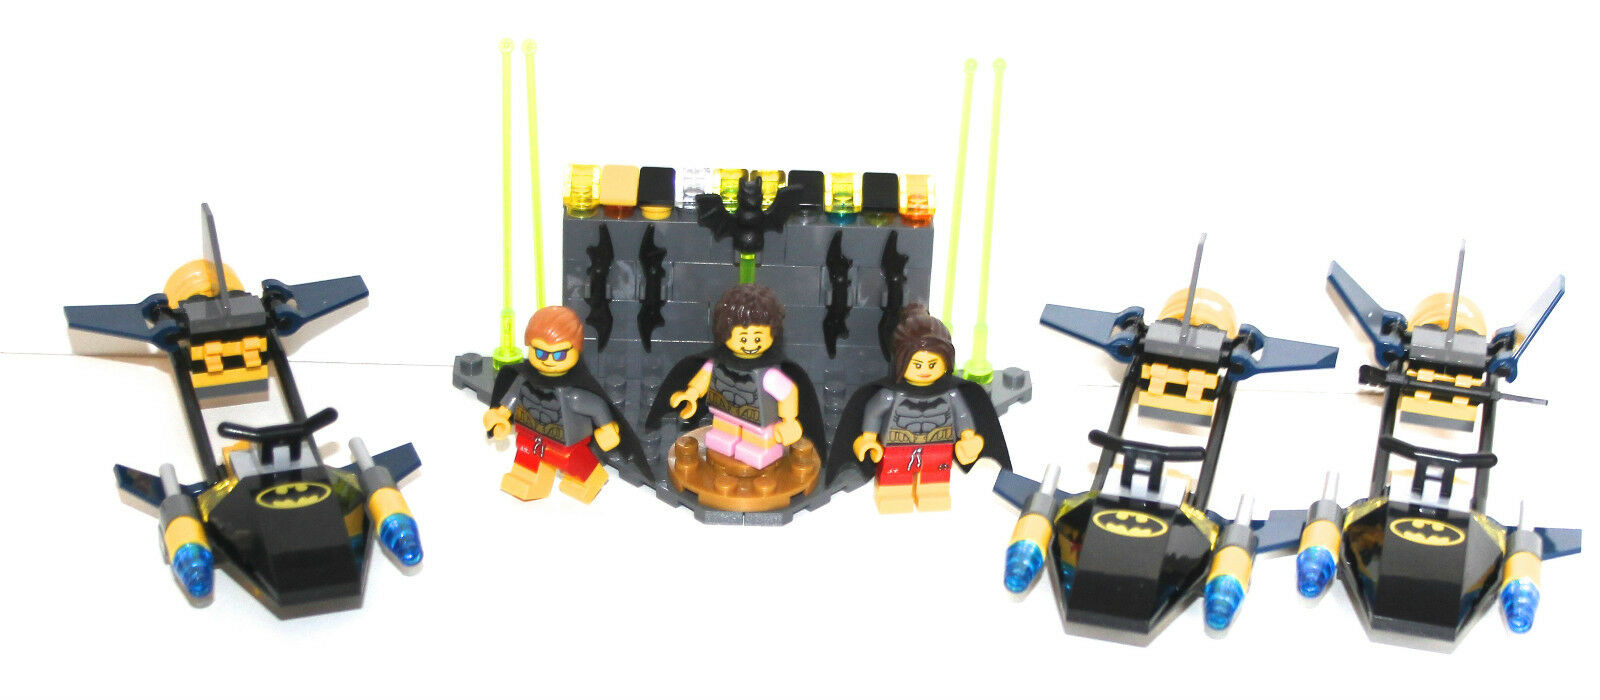 LEGO PARTS only - BATMAN FAMILY - 3 minifigures + 3 speeders - as in the picture